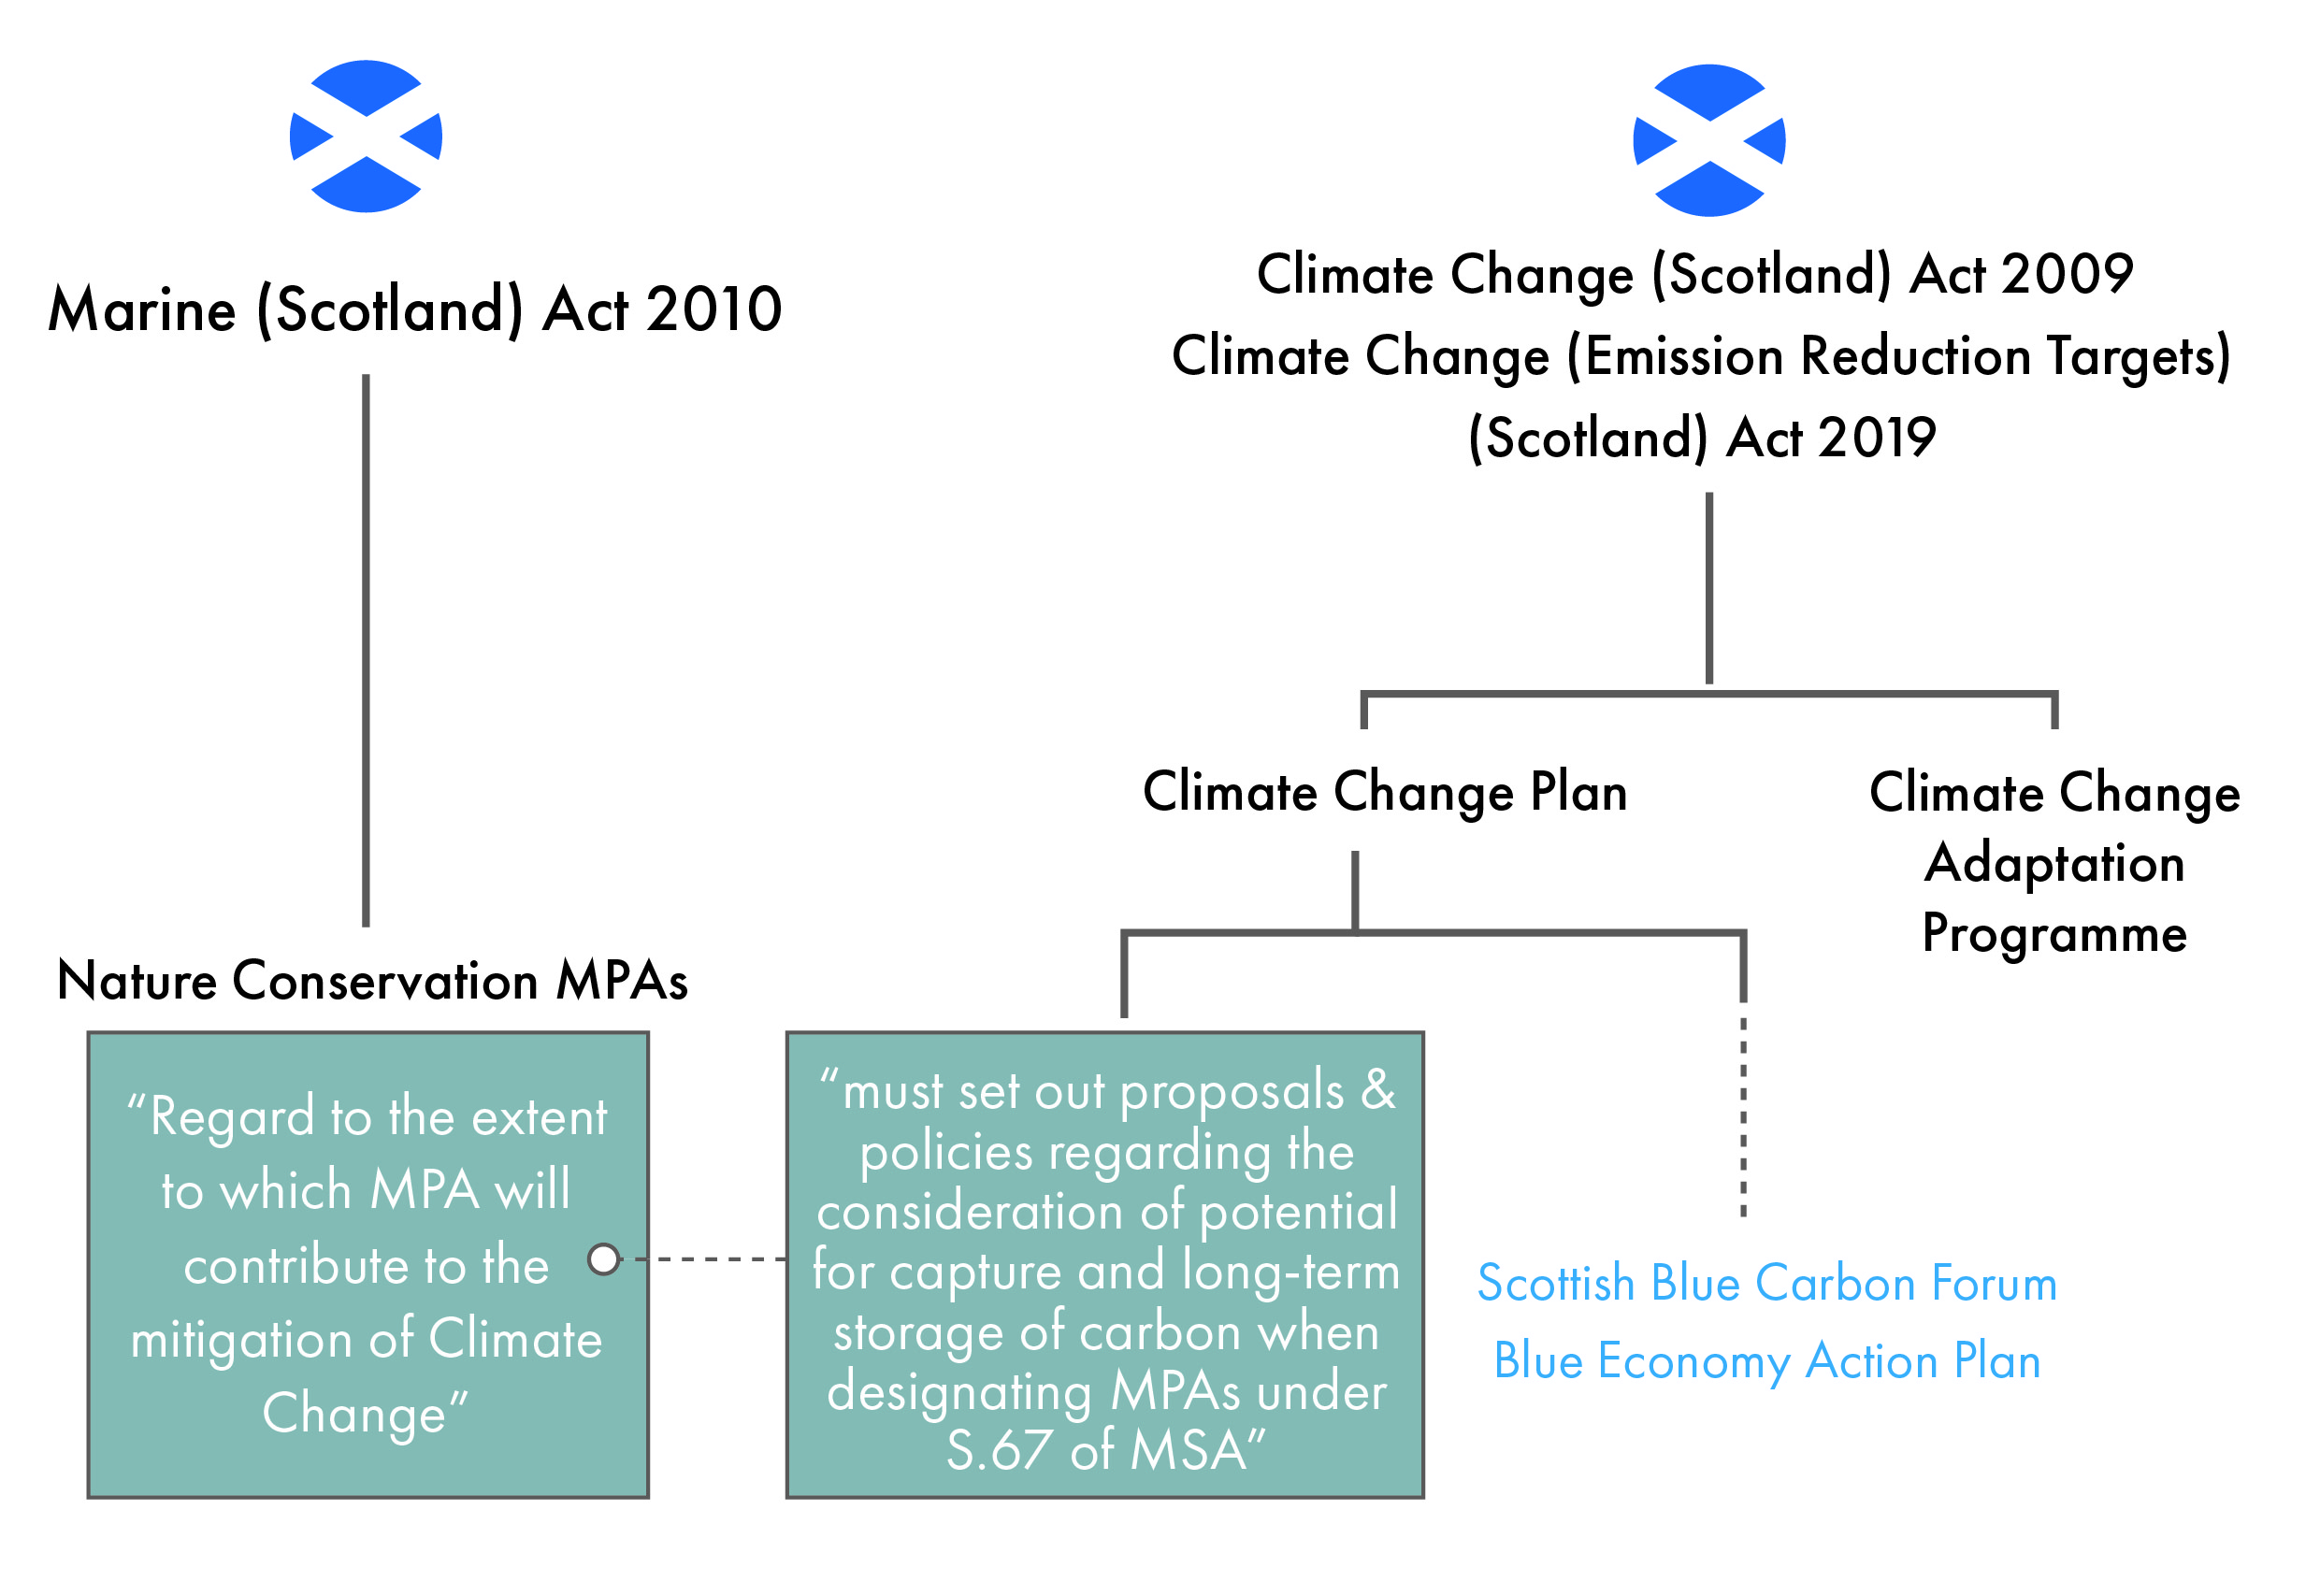 Plans and Programmes required by the Climate Change Acts, showing that the CCP must set out policies and proposals to consider carbon storage when designating MPAs under the Marine Scotland Act (shown on the left). Grey boxes indicate the requirements set out in the Acts. Dashed line and blue text indicates the consideration of blue carbon in the CCP and the CCPu.